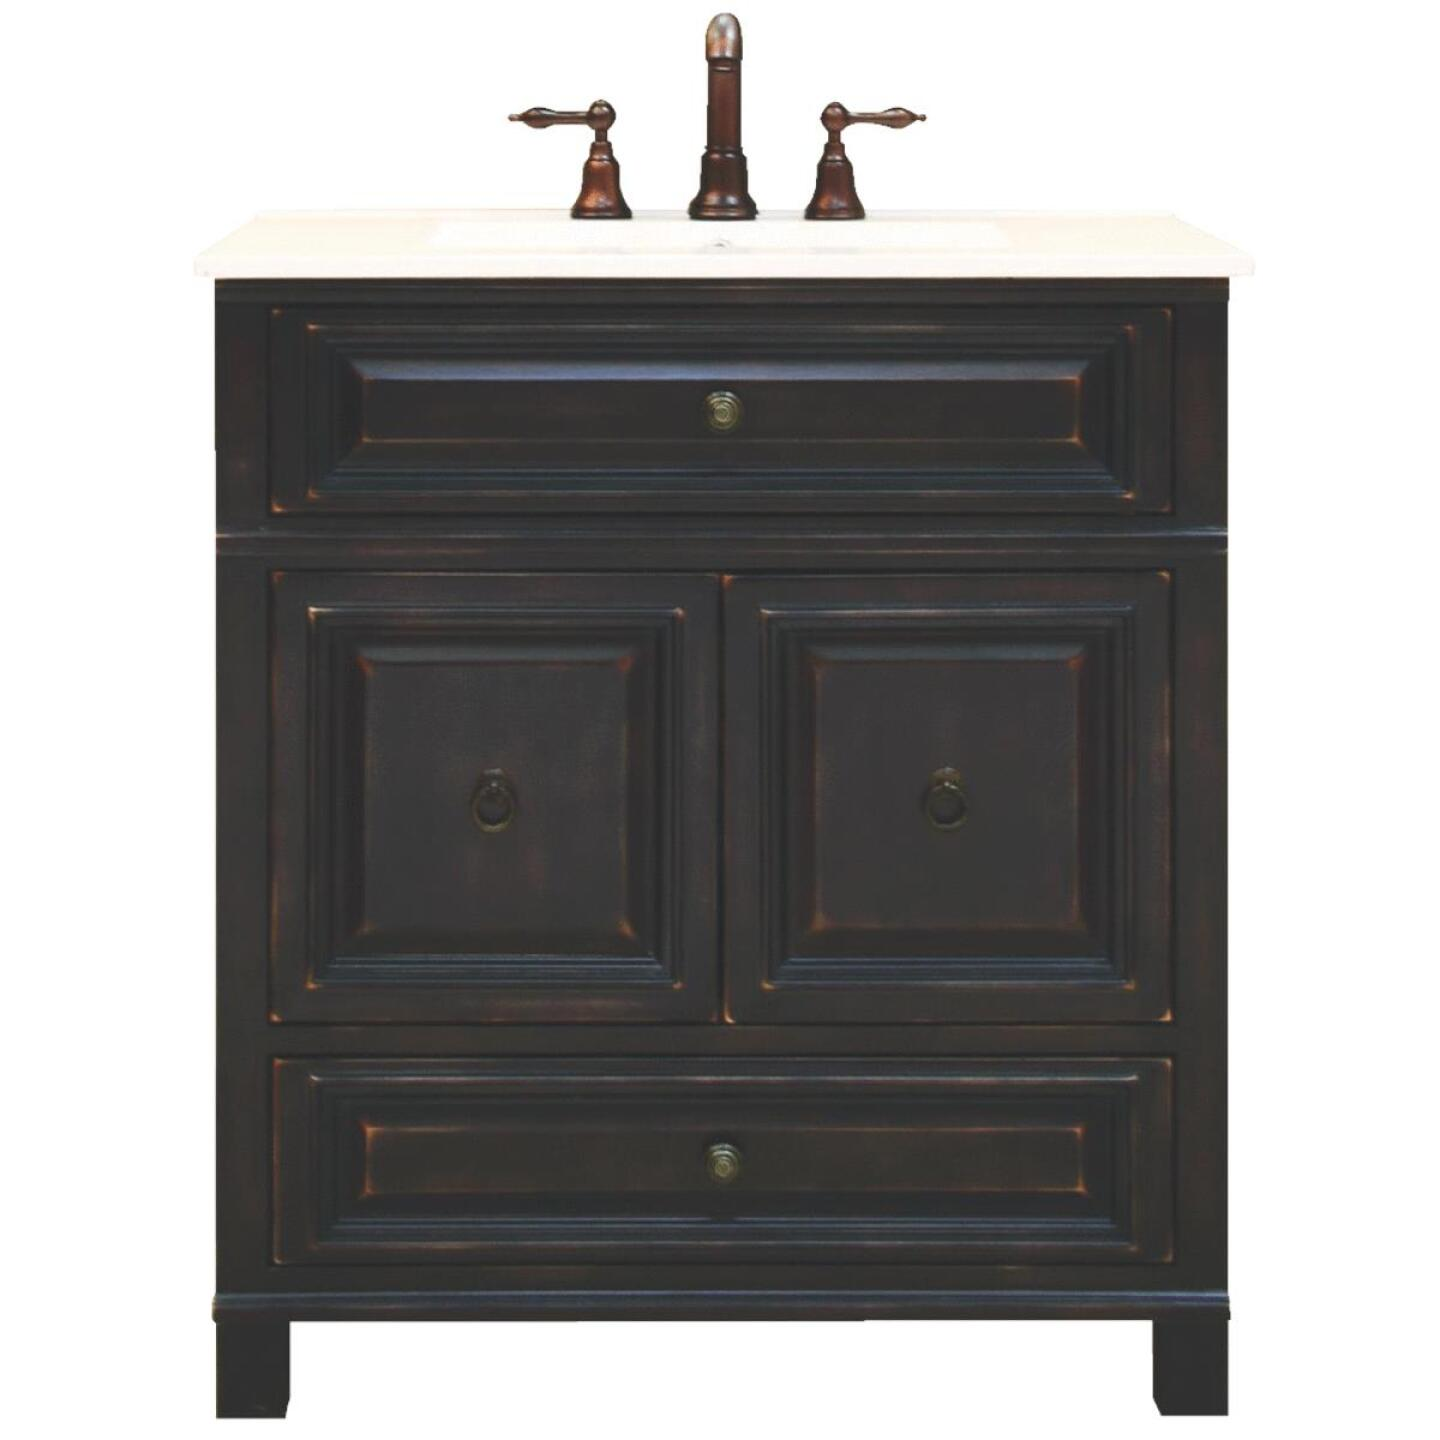 Sunny Wood Barton Hill Black Onyx 30 In. W x 34 In. H x 21 In. D Vanity Base, 2 Door/1 Drawer Image 1